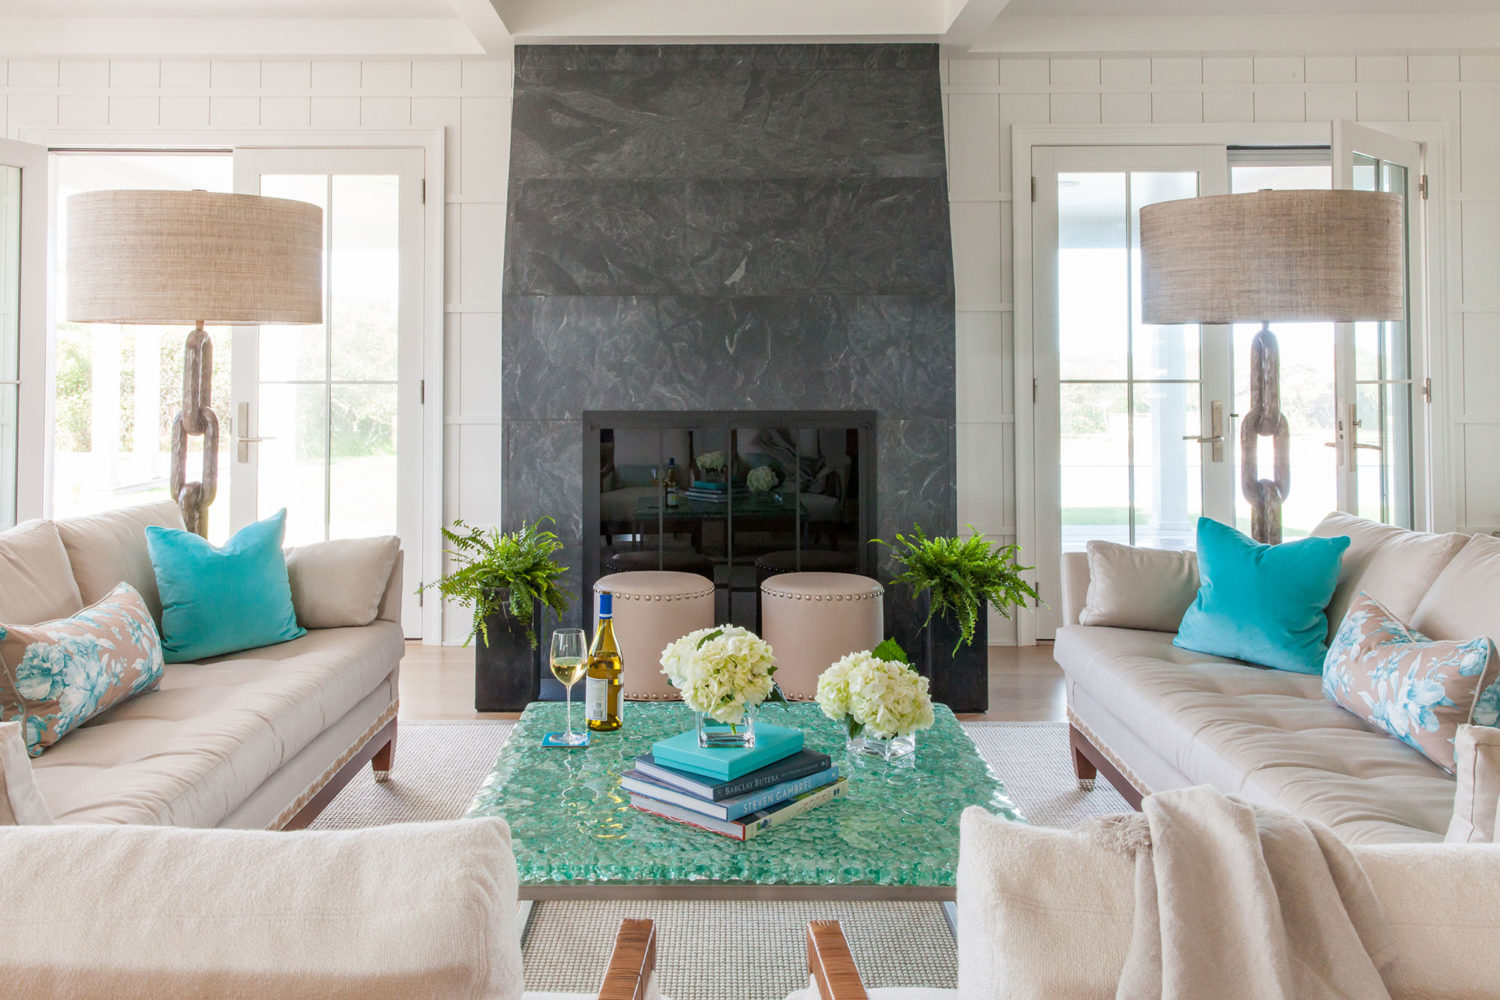 Incroyable New York City Interior Design. Nantucket Interior Design